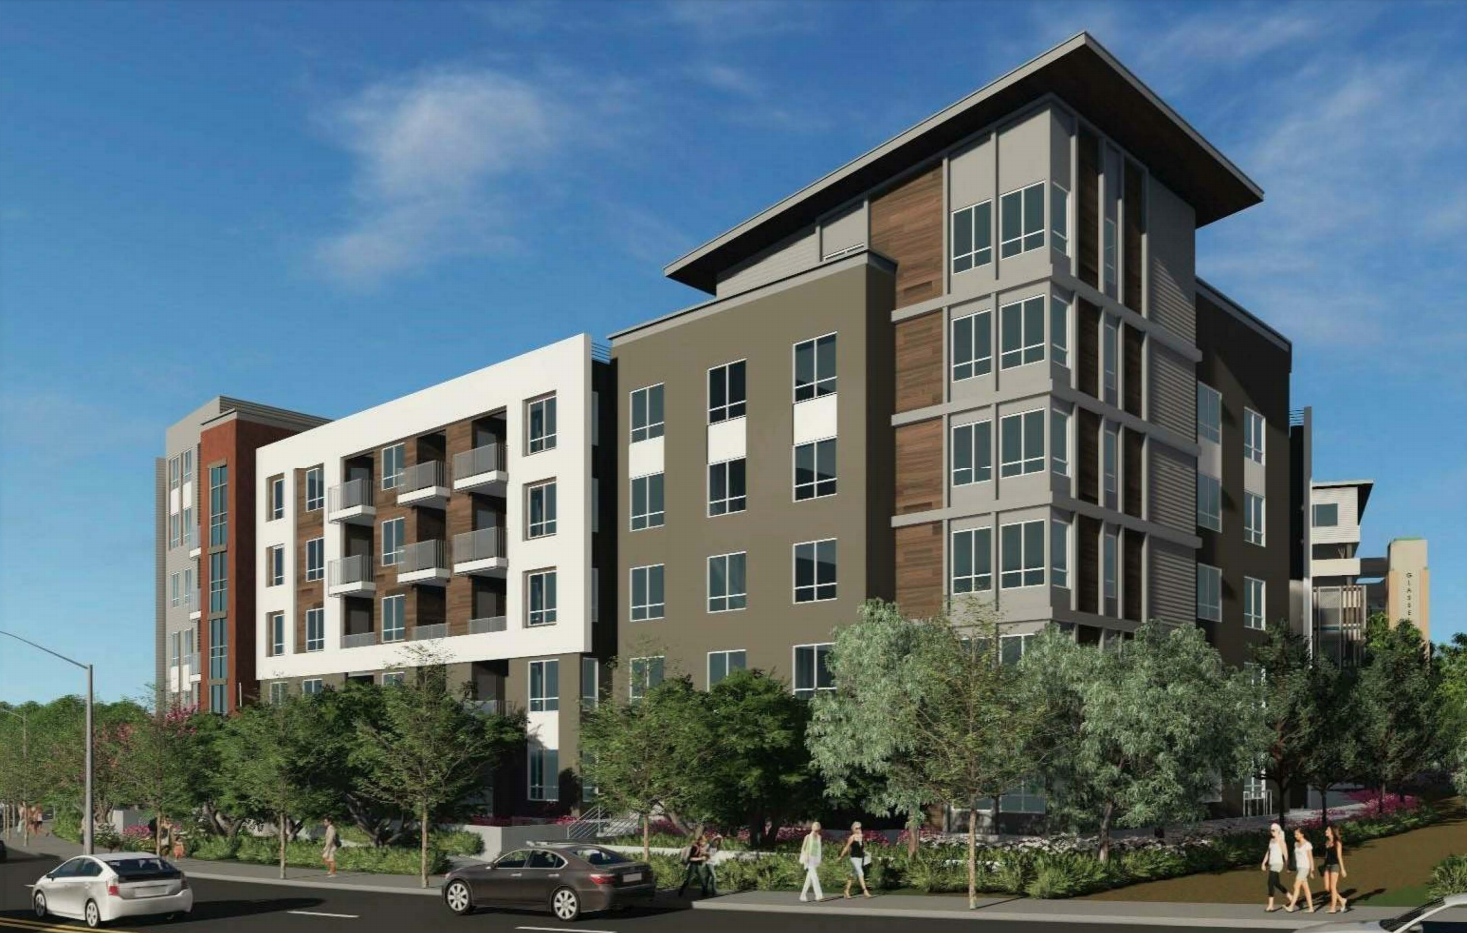 Freeway-hugging apartments in Glassell Park have the planning commission's blessing